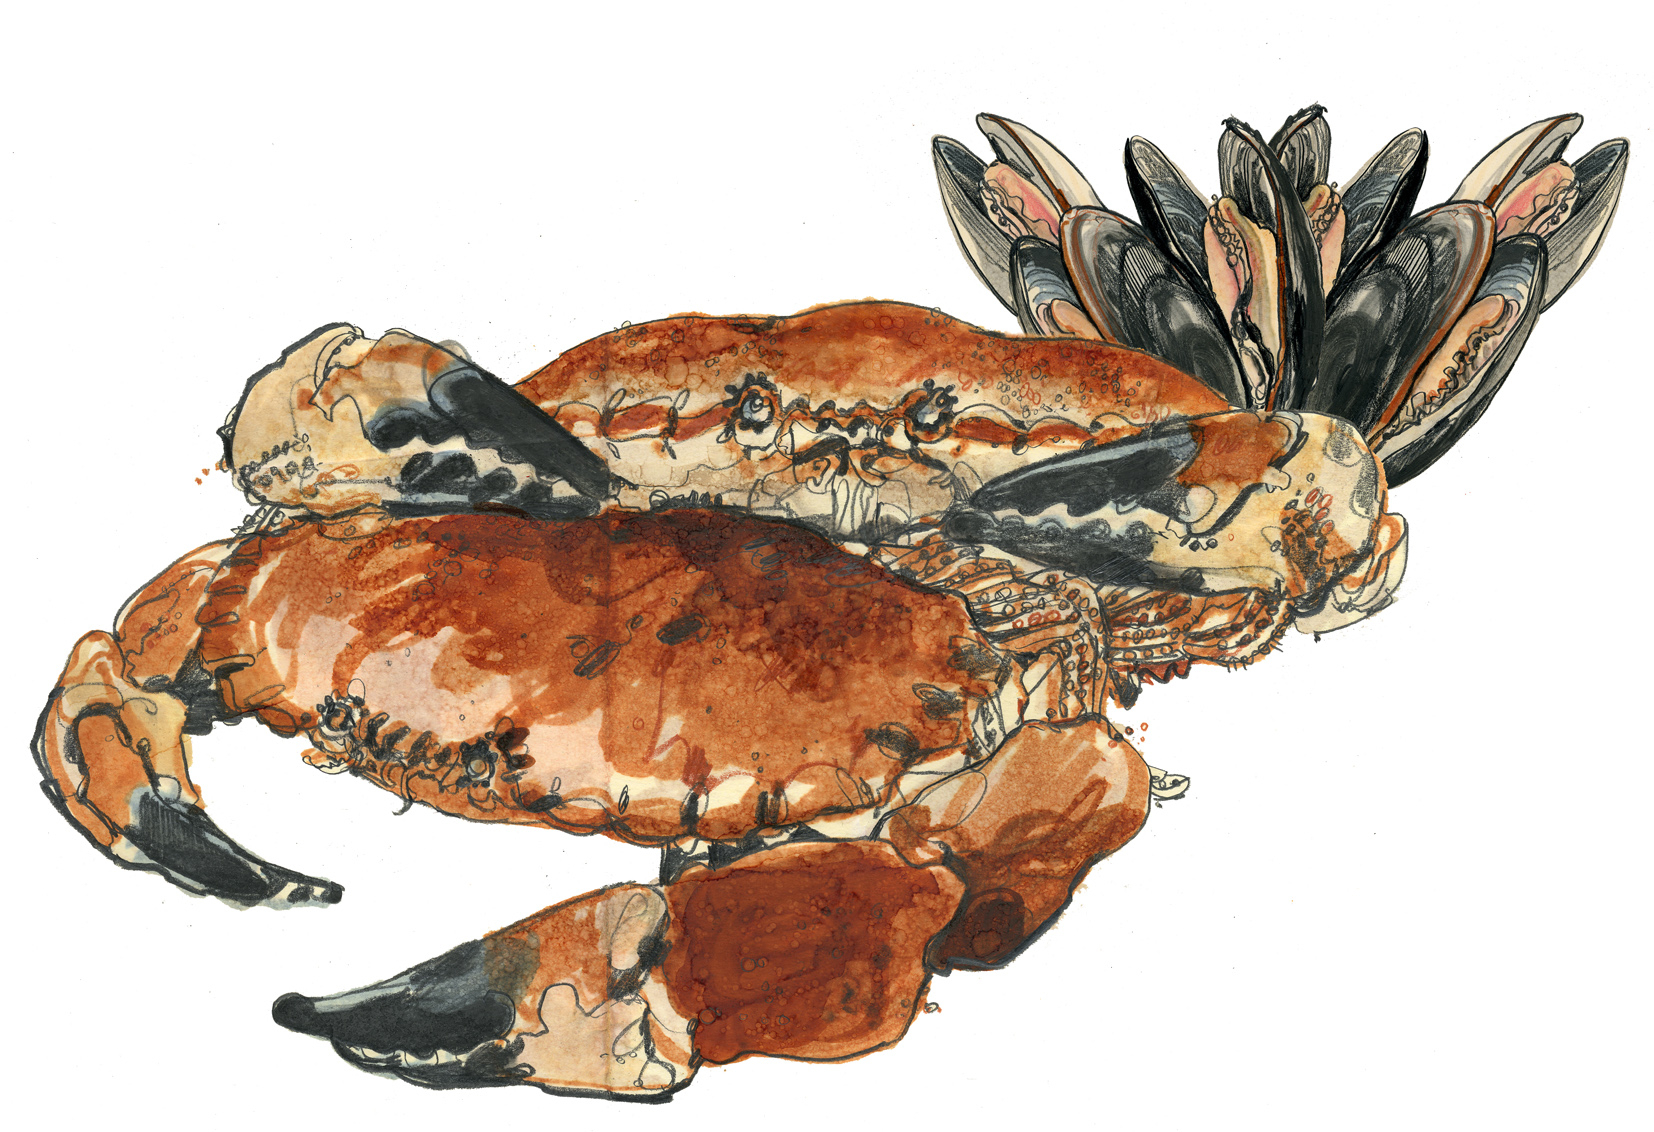 Cromer Crabs Waitrose Food Illustrated